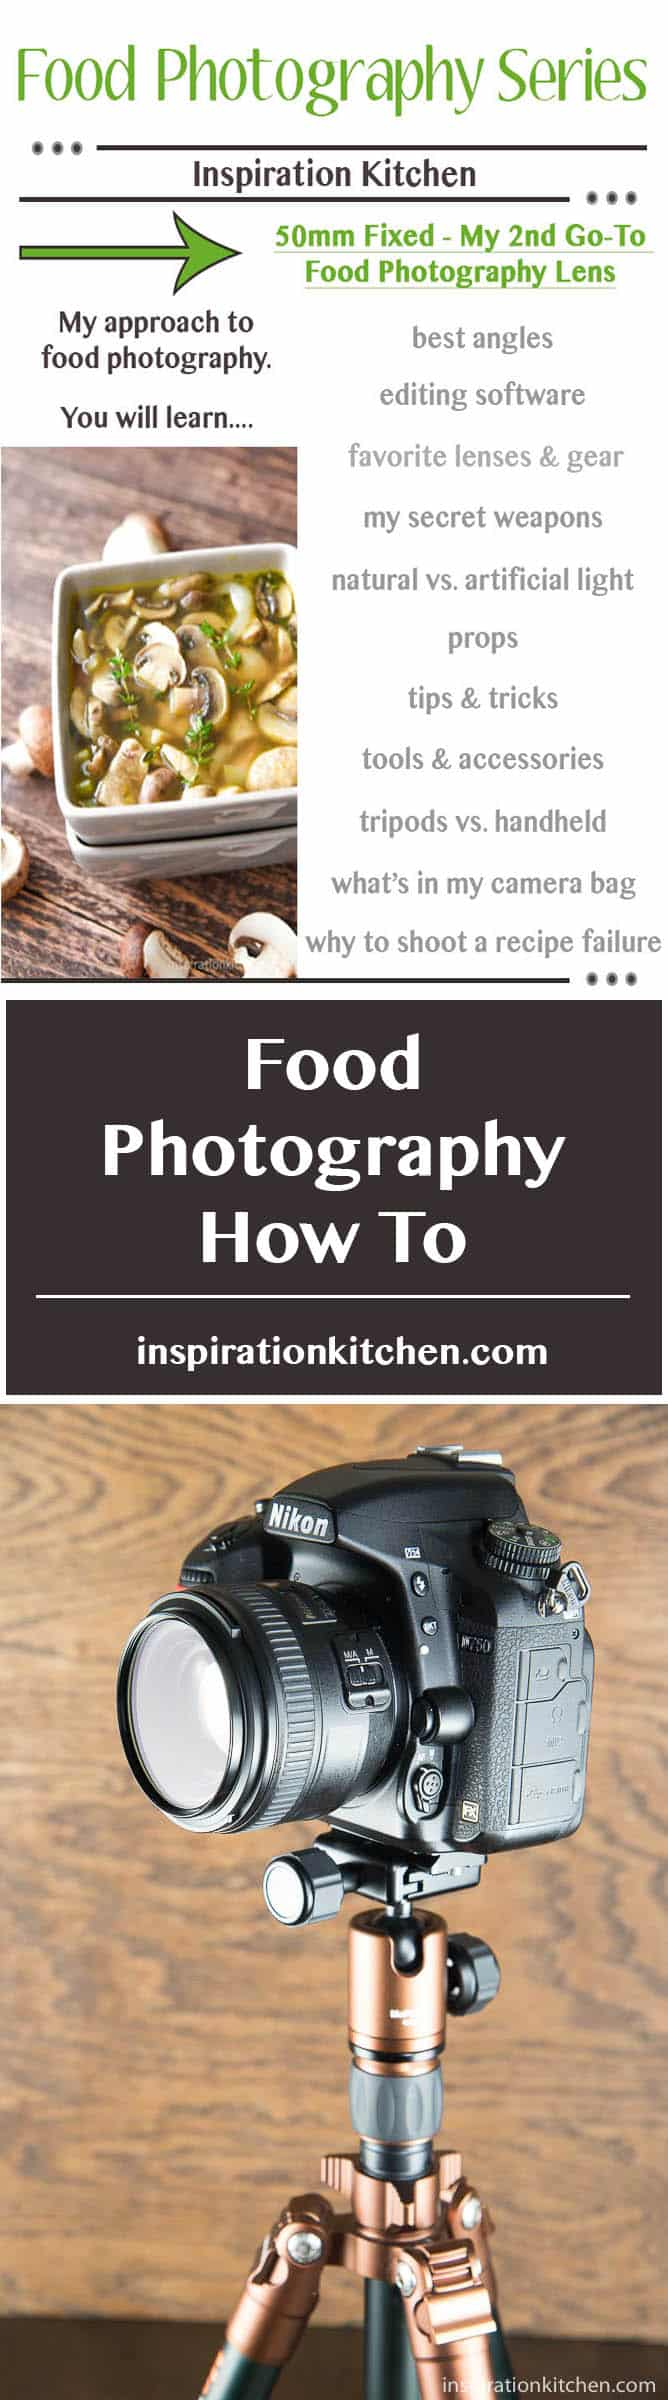 My 2nd Favorite Food Photography Lens - 50mm Fixed - inspirationkitchen.com